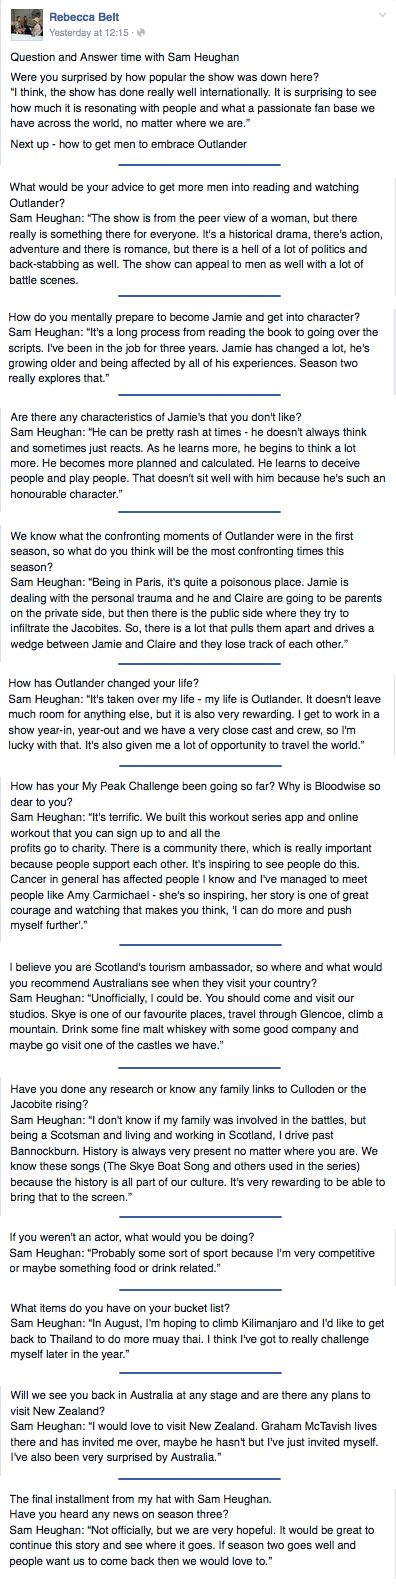 FB Q&A between Sam Heughan and journalist Rebecca Bell from The Northern Daily Leader in Tamworth, Australia. Just copied it all into one convo.